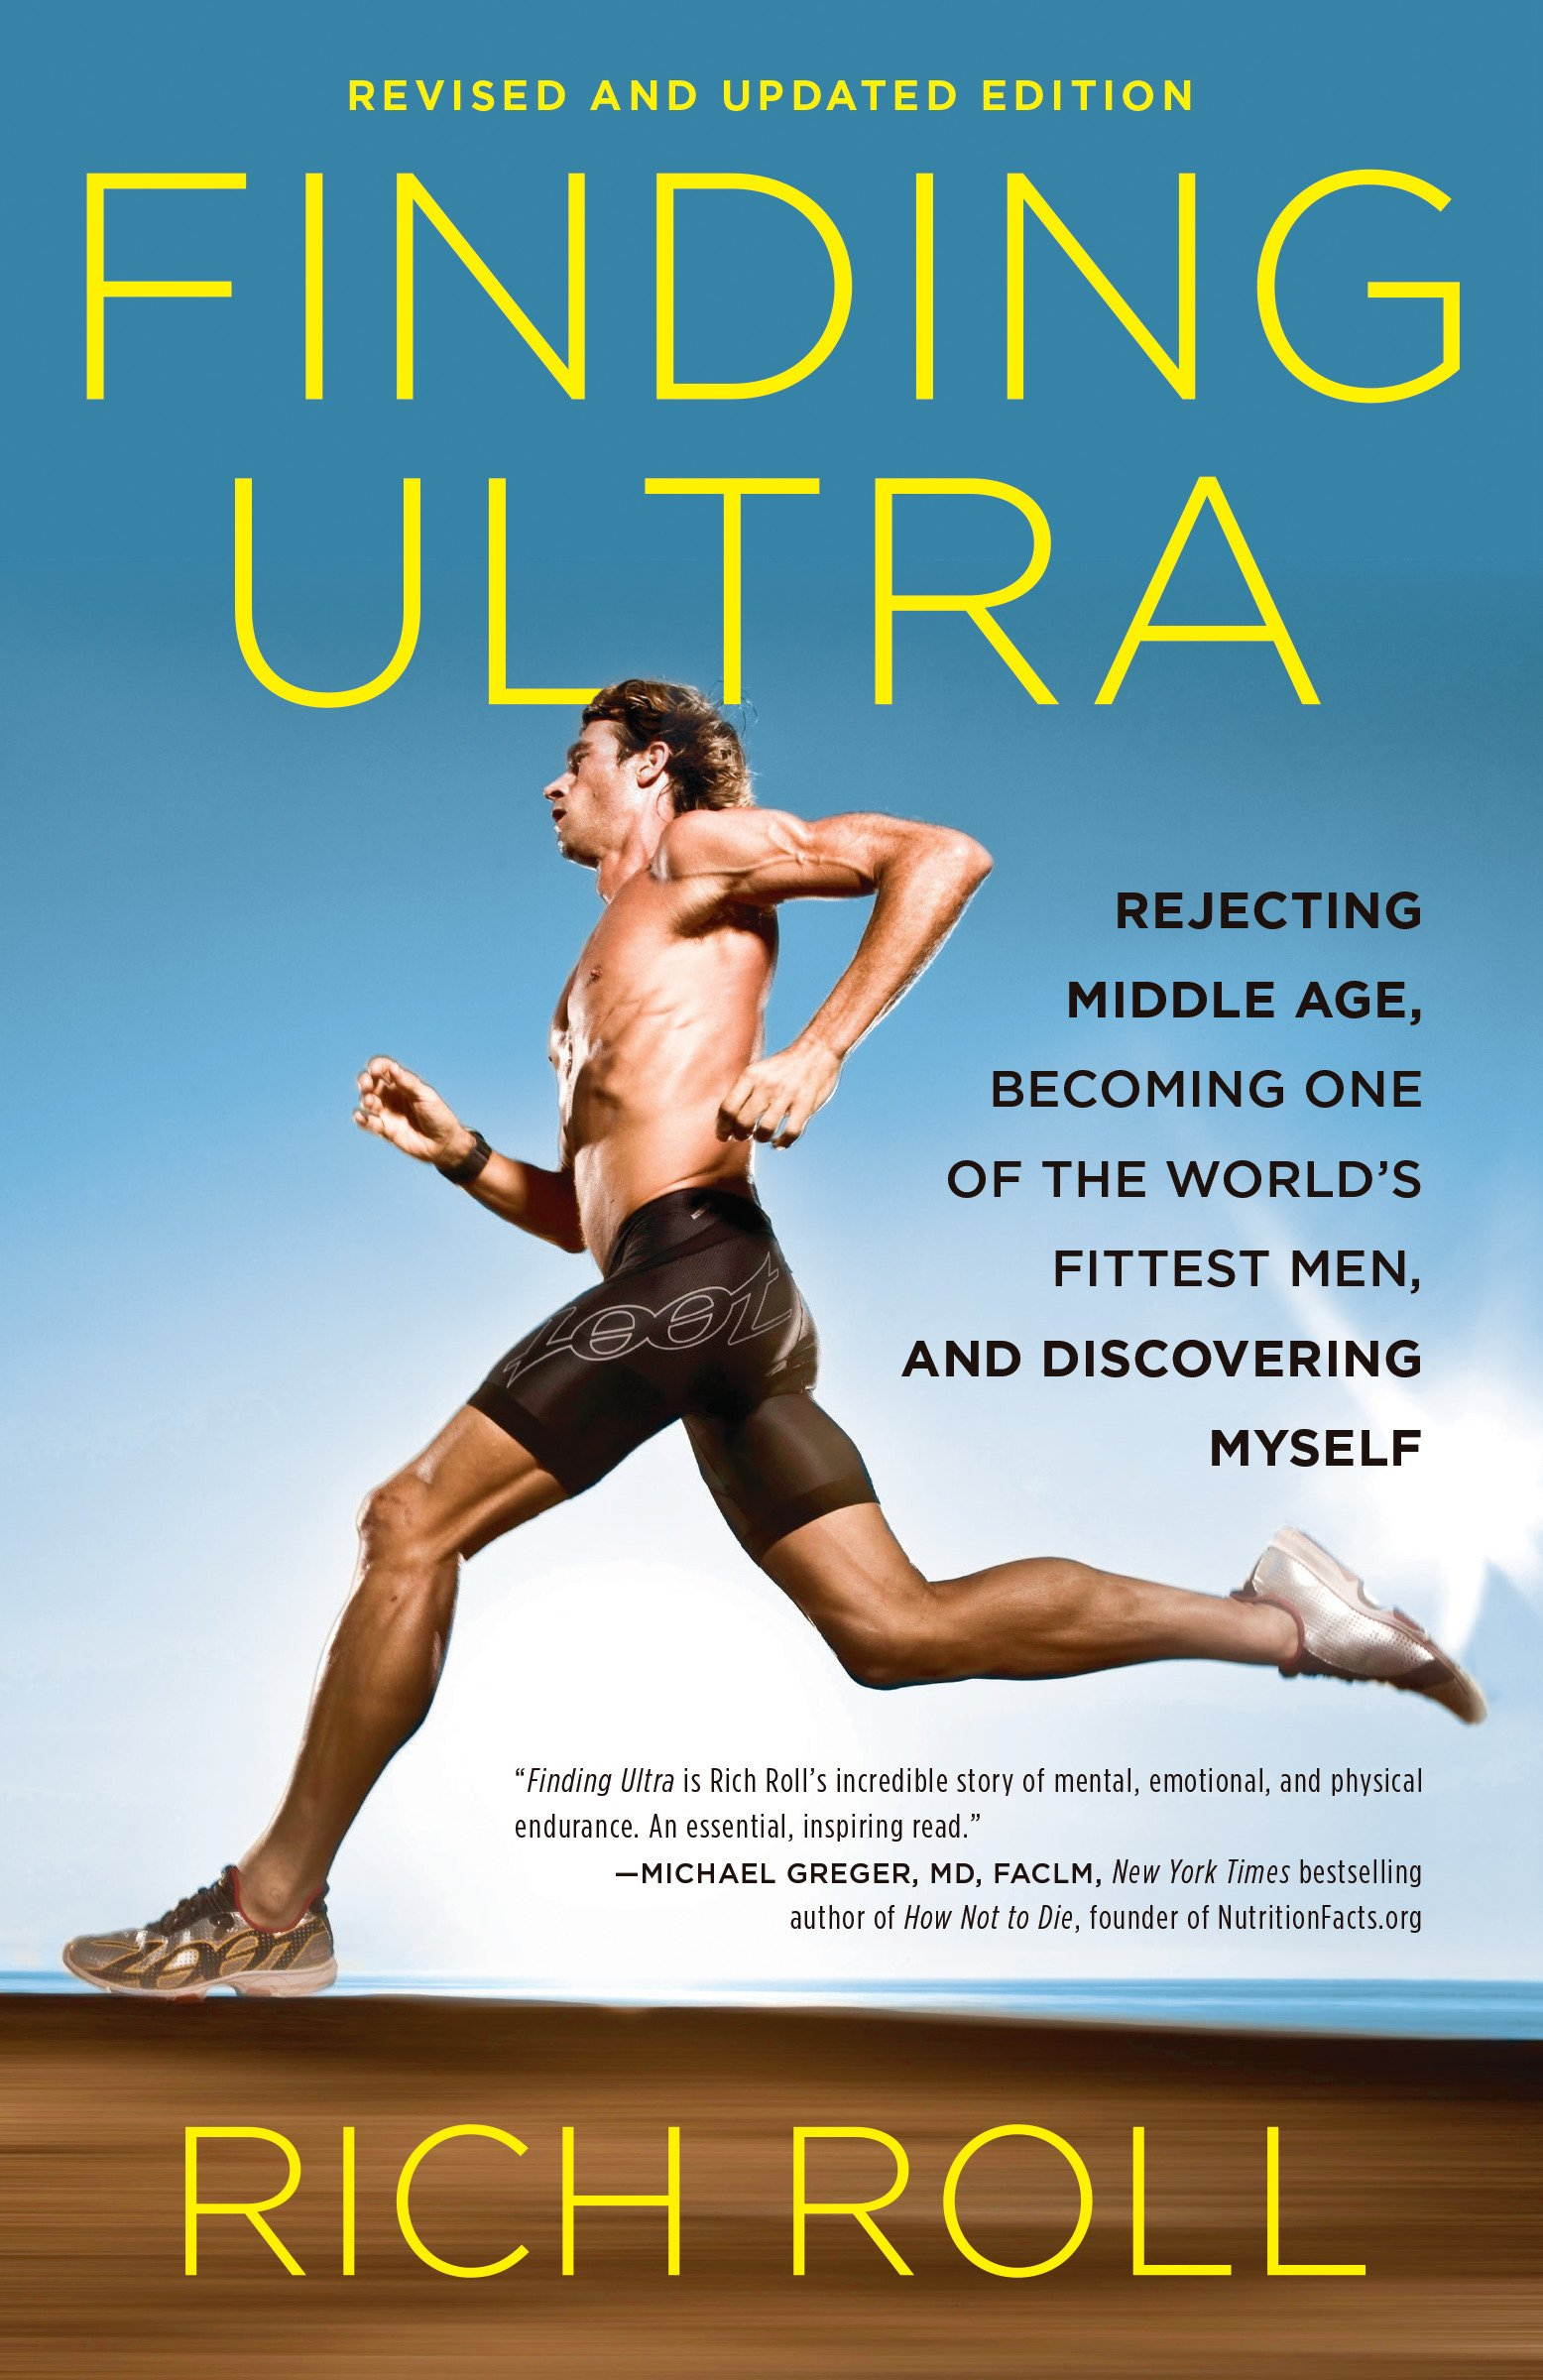 Finding Ultra Revised And Updated Edition  Rejecting Middle Age Becoming One Of The World's Fittest Men And Discovering Myself  English Edition